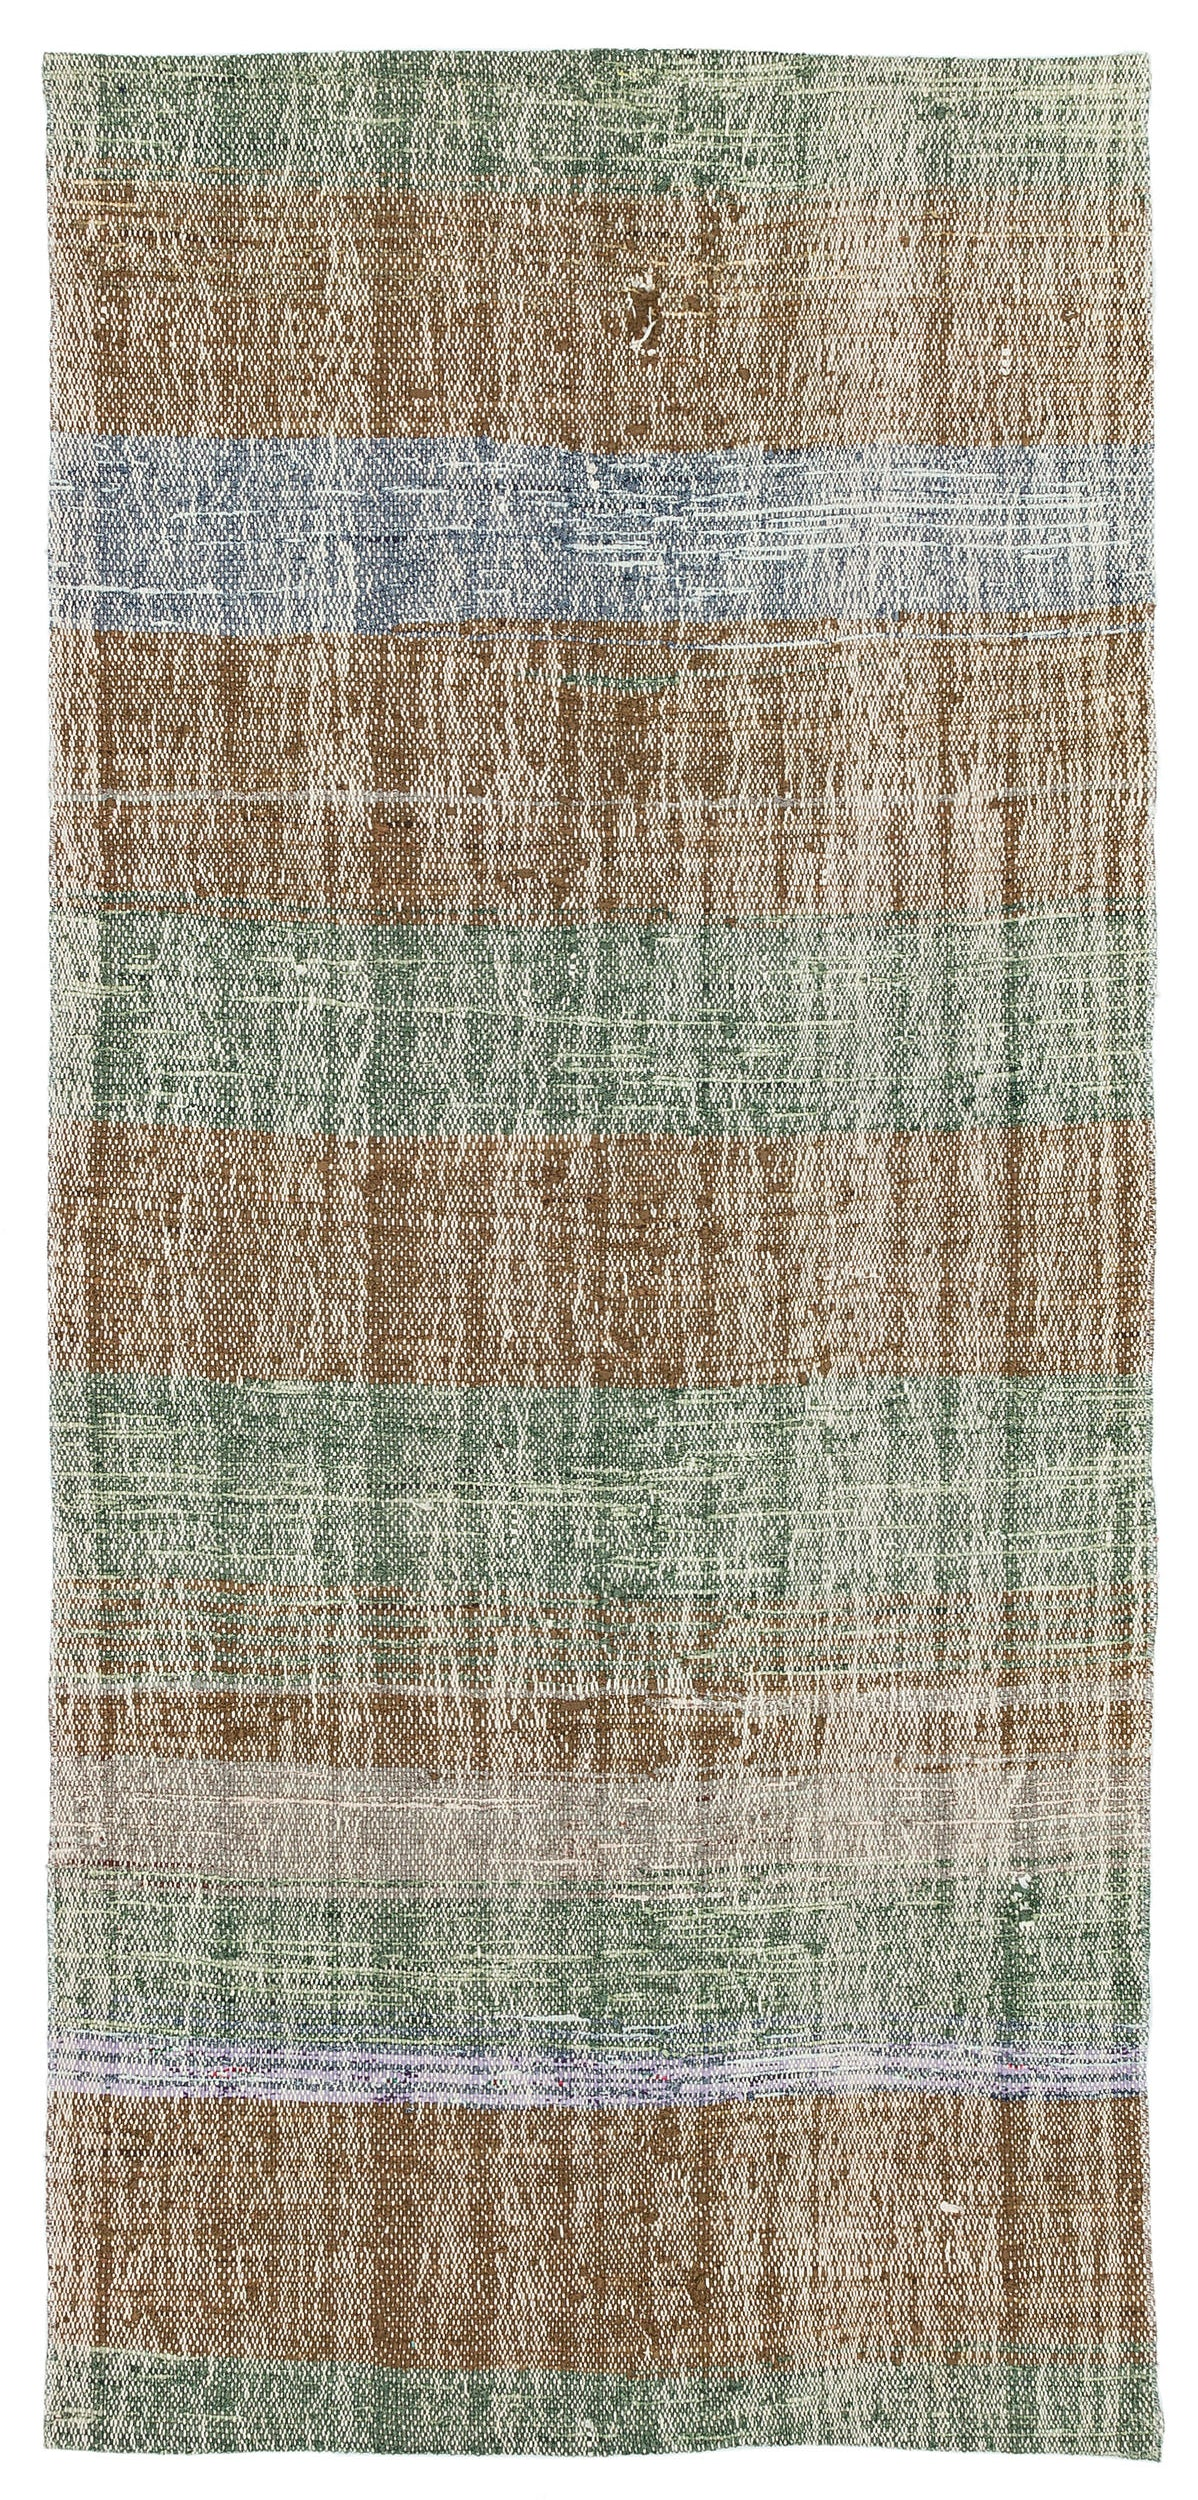 Chaput Over Dyed Kilim Rug 2'9'' x 5'11'' ft 84 x 181 cm